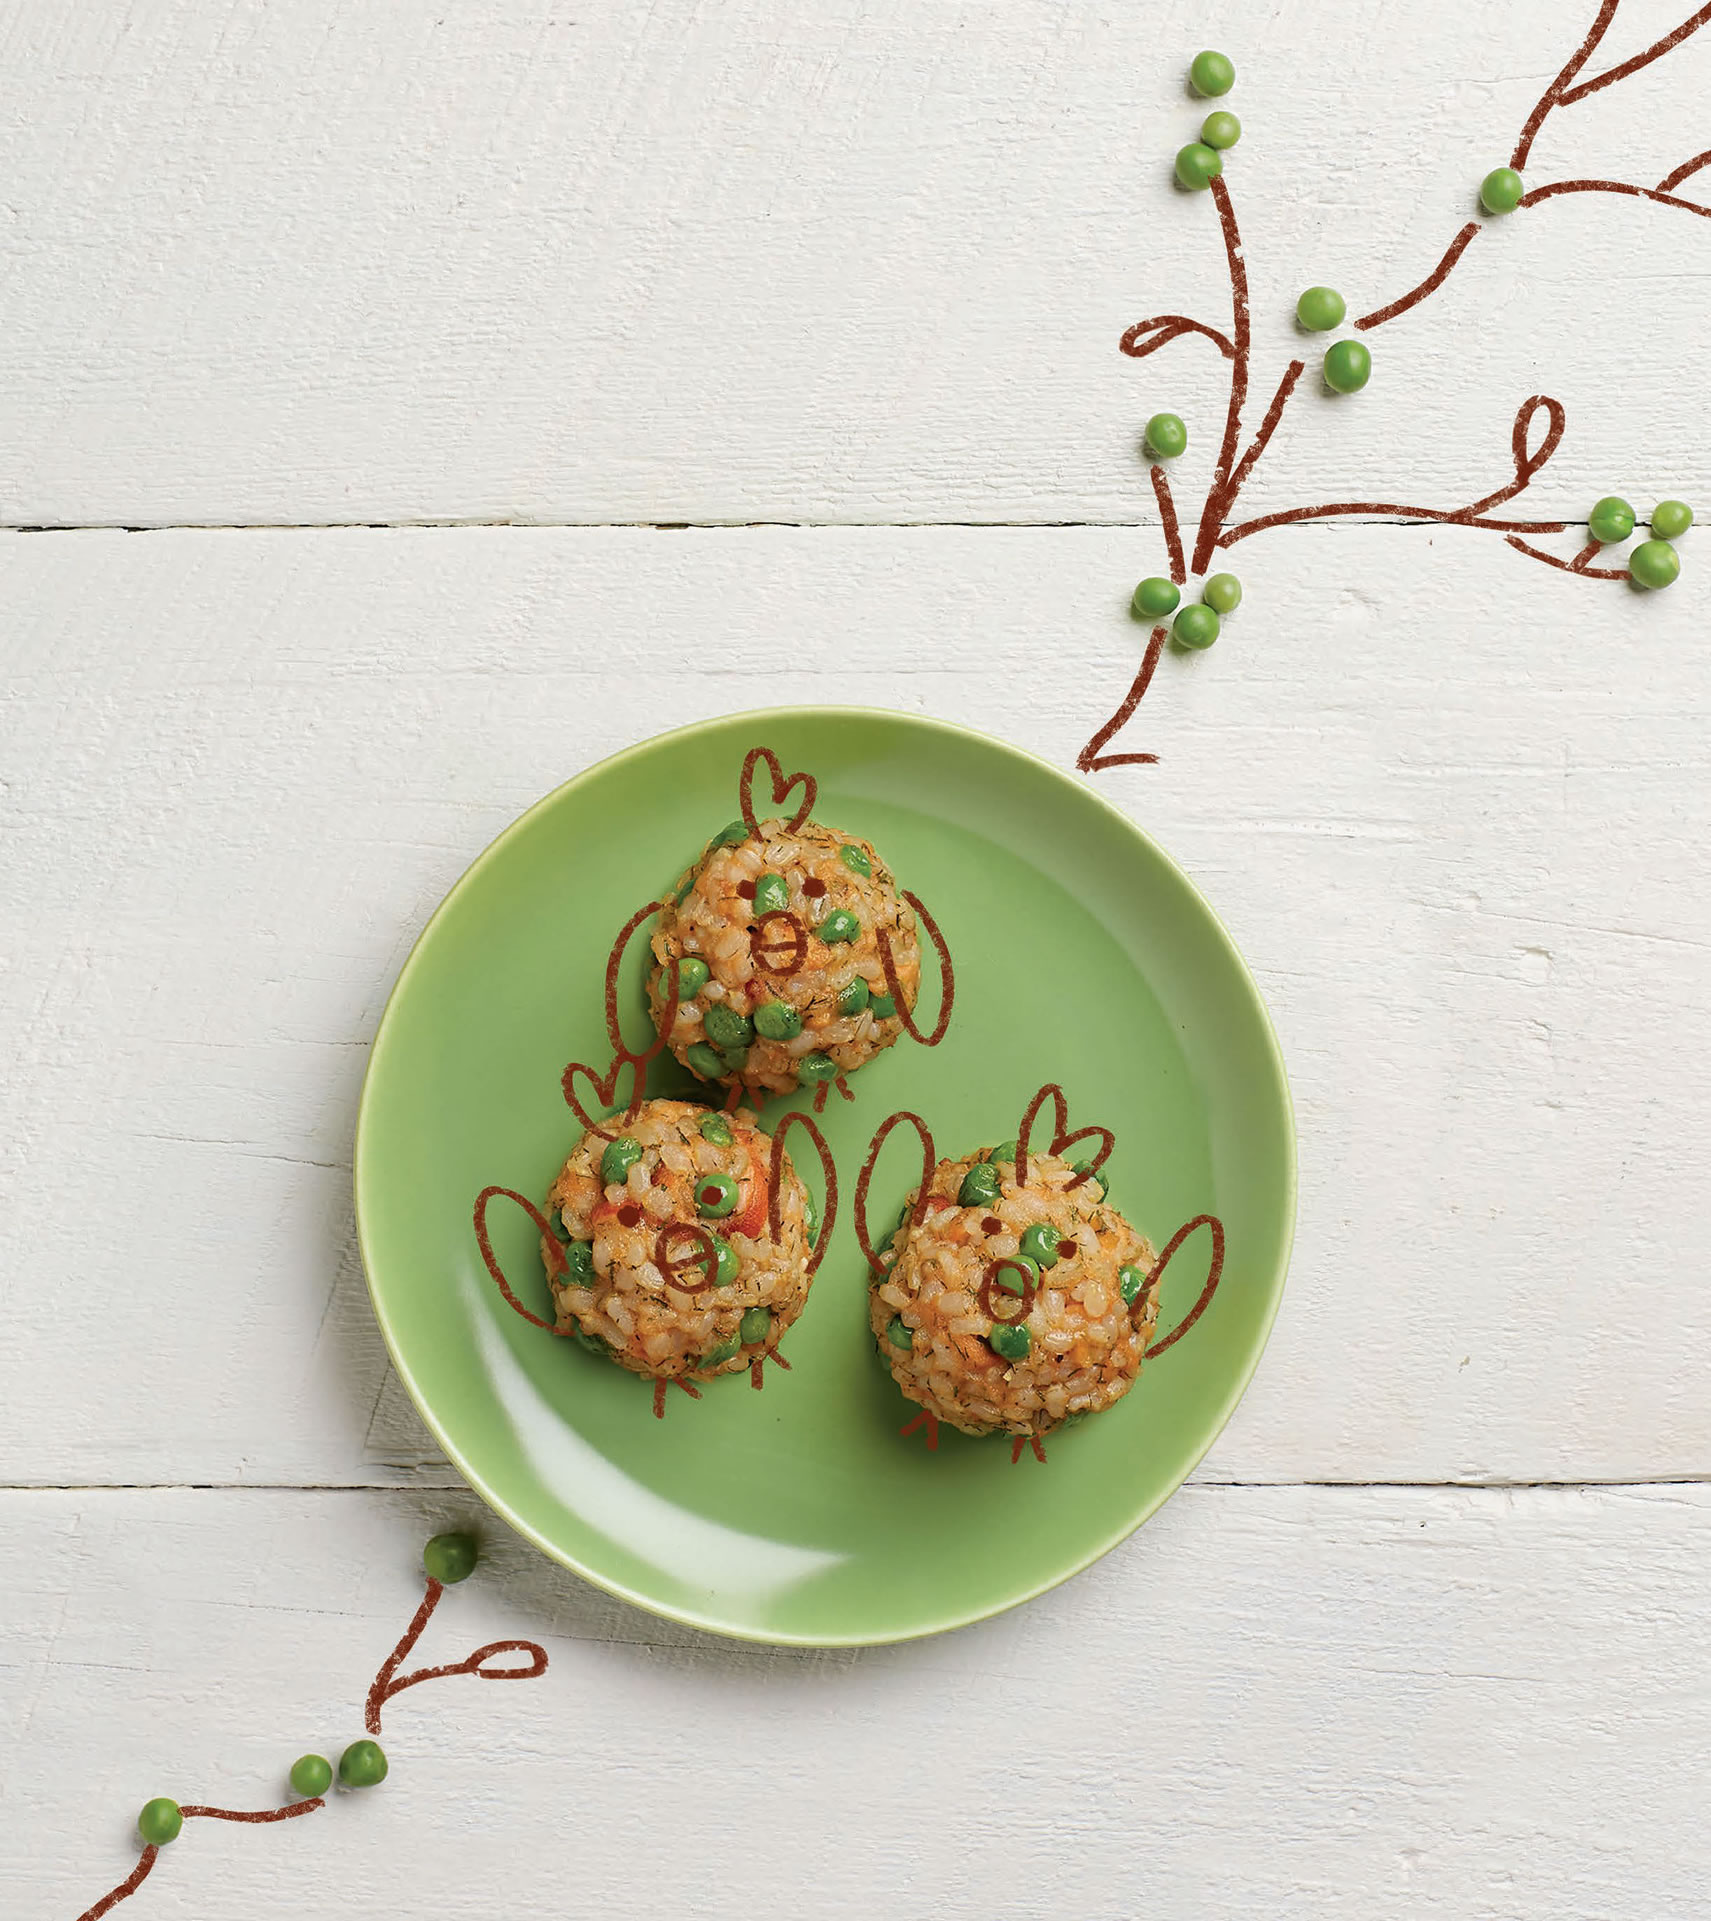 BAKED RICE BALLS WITH SALMON AND PEAS